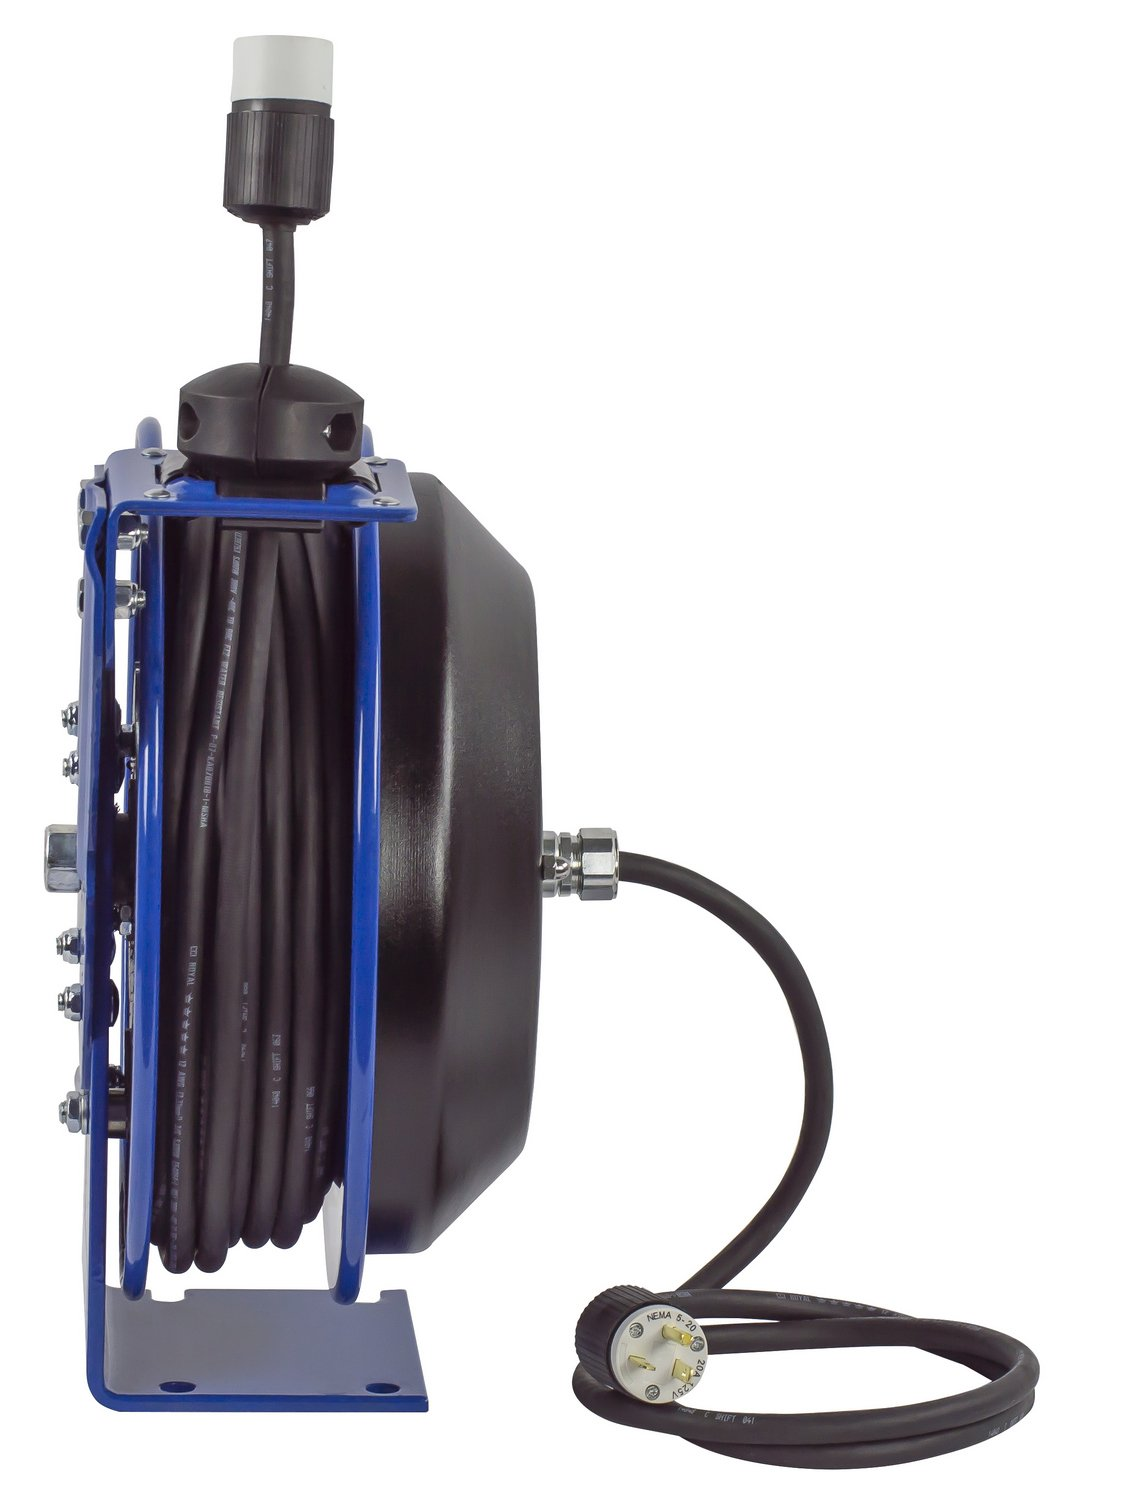 Coxreels PC13-3516-A Spring Rewind SJO Power Cord Reel 115 Volts 13 Amp 35 Length 35/' Length 170-PC13-3516-A